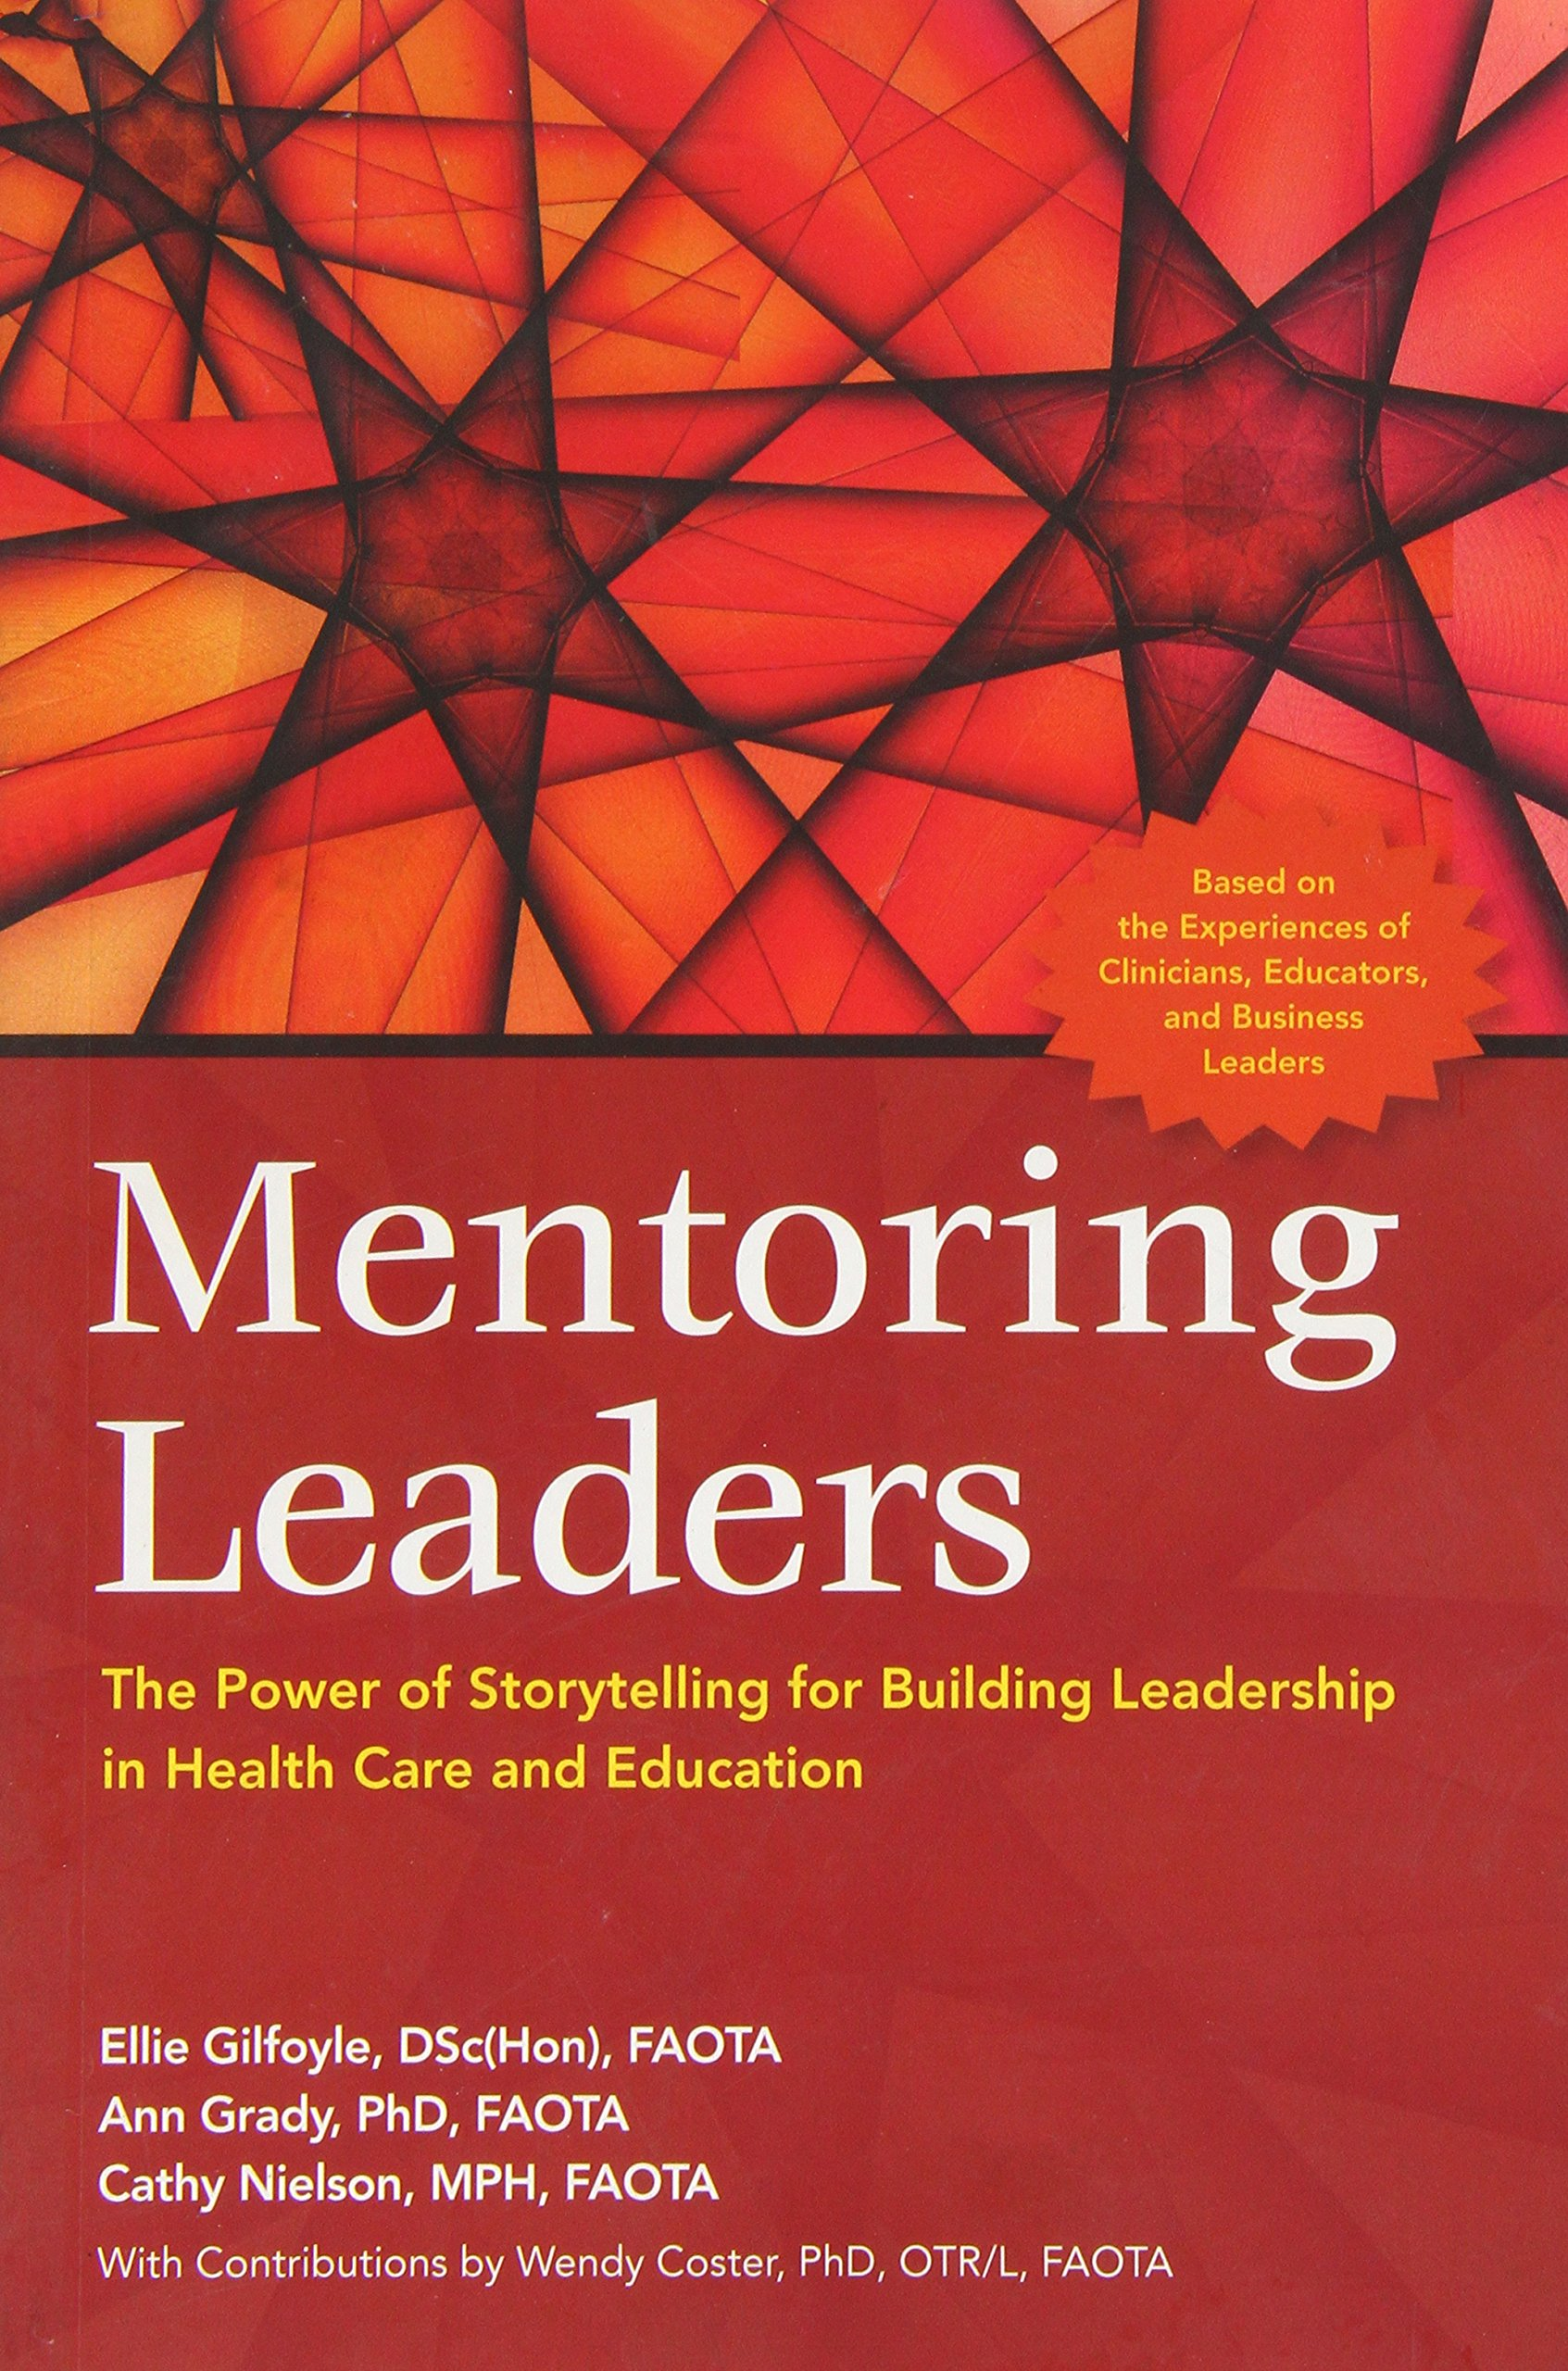 mentoring leaders the power of storytelling for building mentoring leaders the power of storytelling for building leadership in health care and education ellie gilfoyle ann grady cathy nielson wendy coster